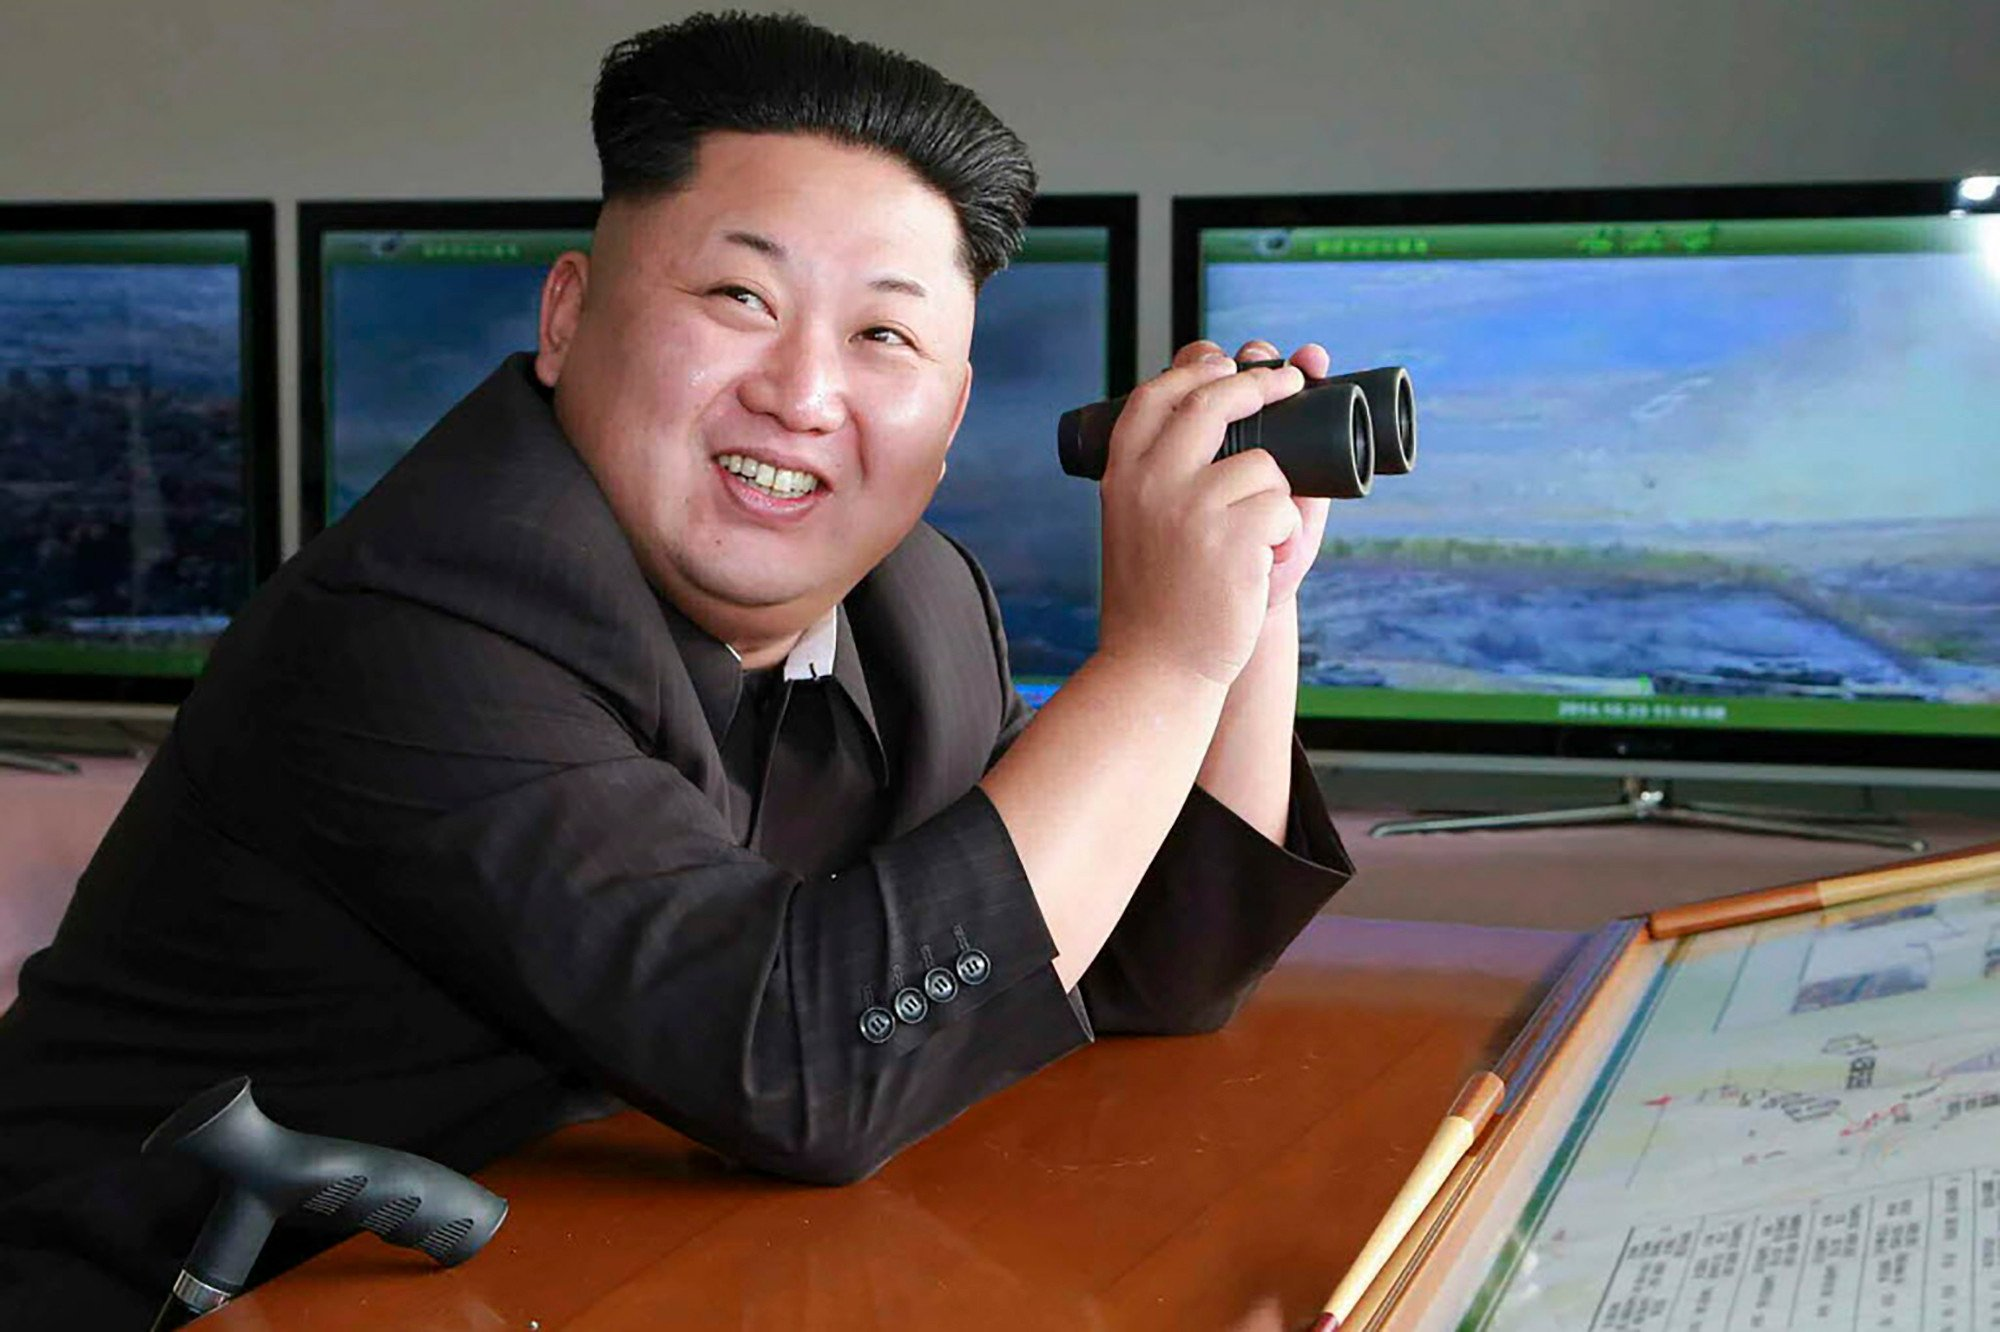 This may be the real reason why Kim Jong Un halted nuclear tests